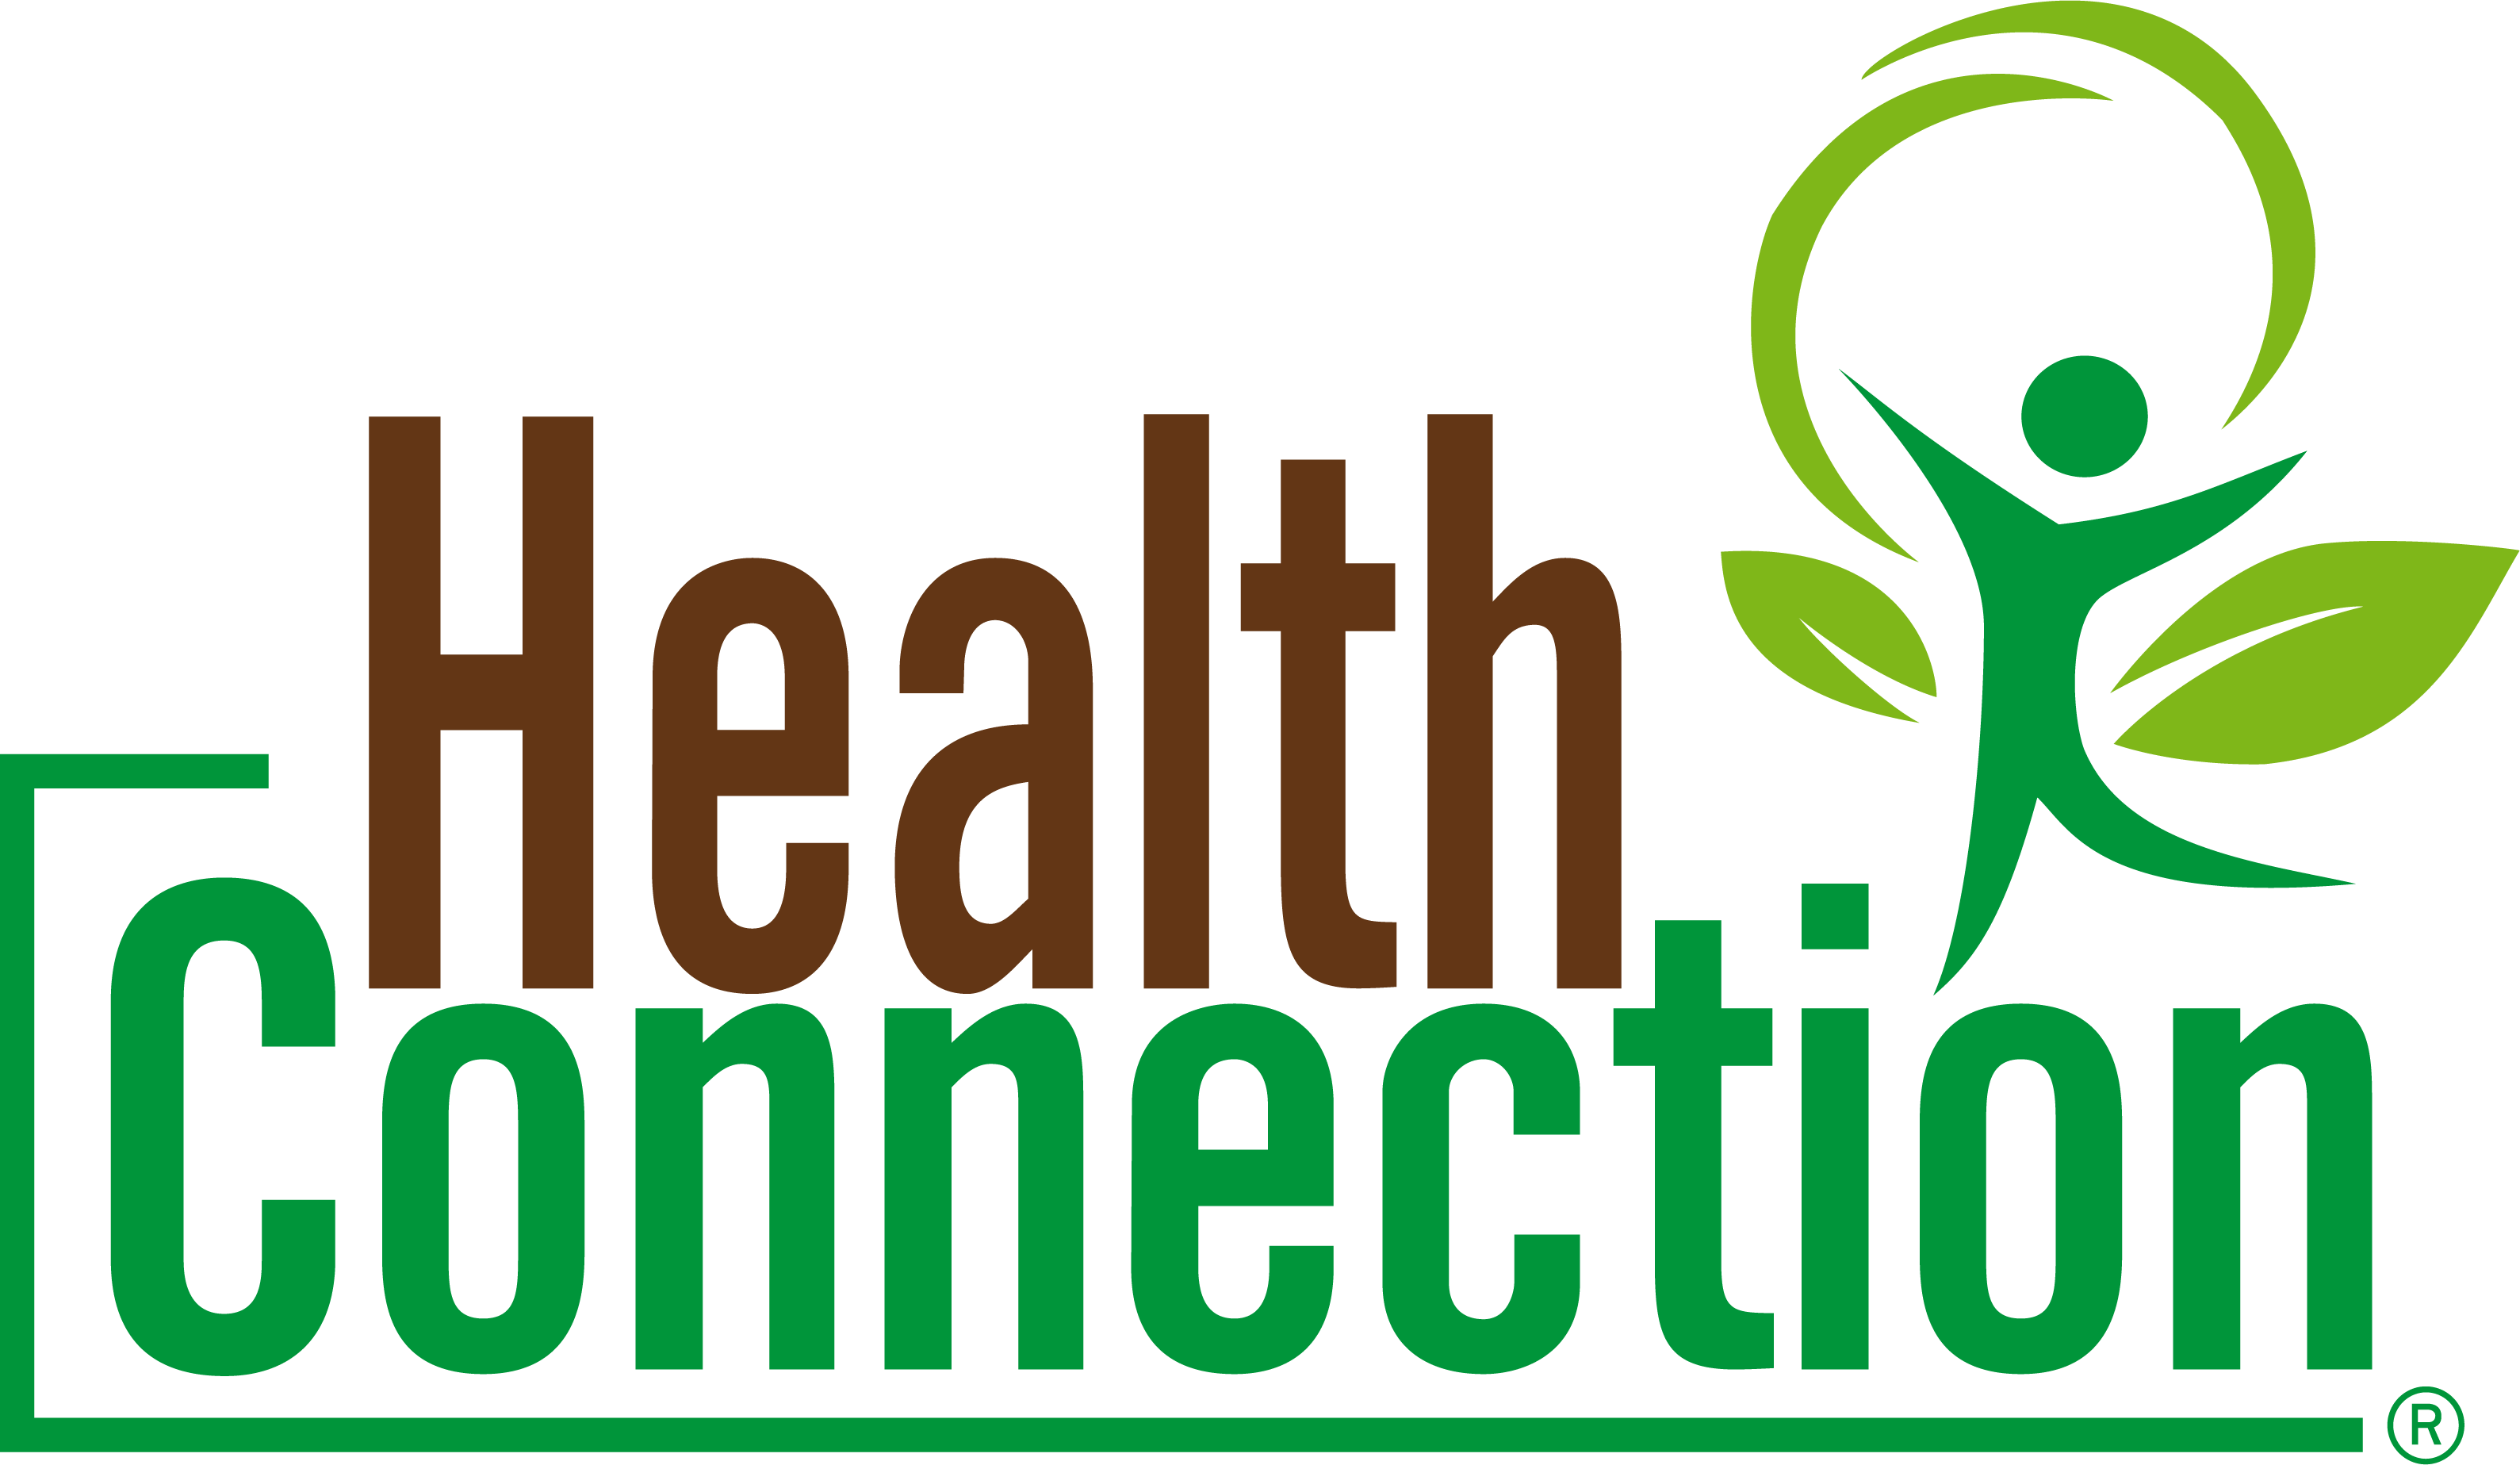 Health Connection - Tienda saludable de Daniela Camus